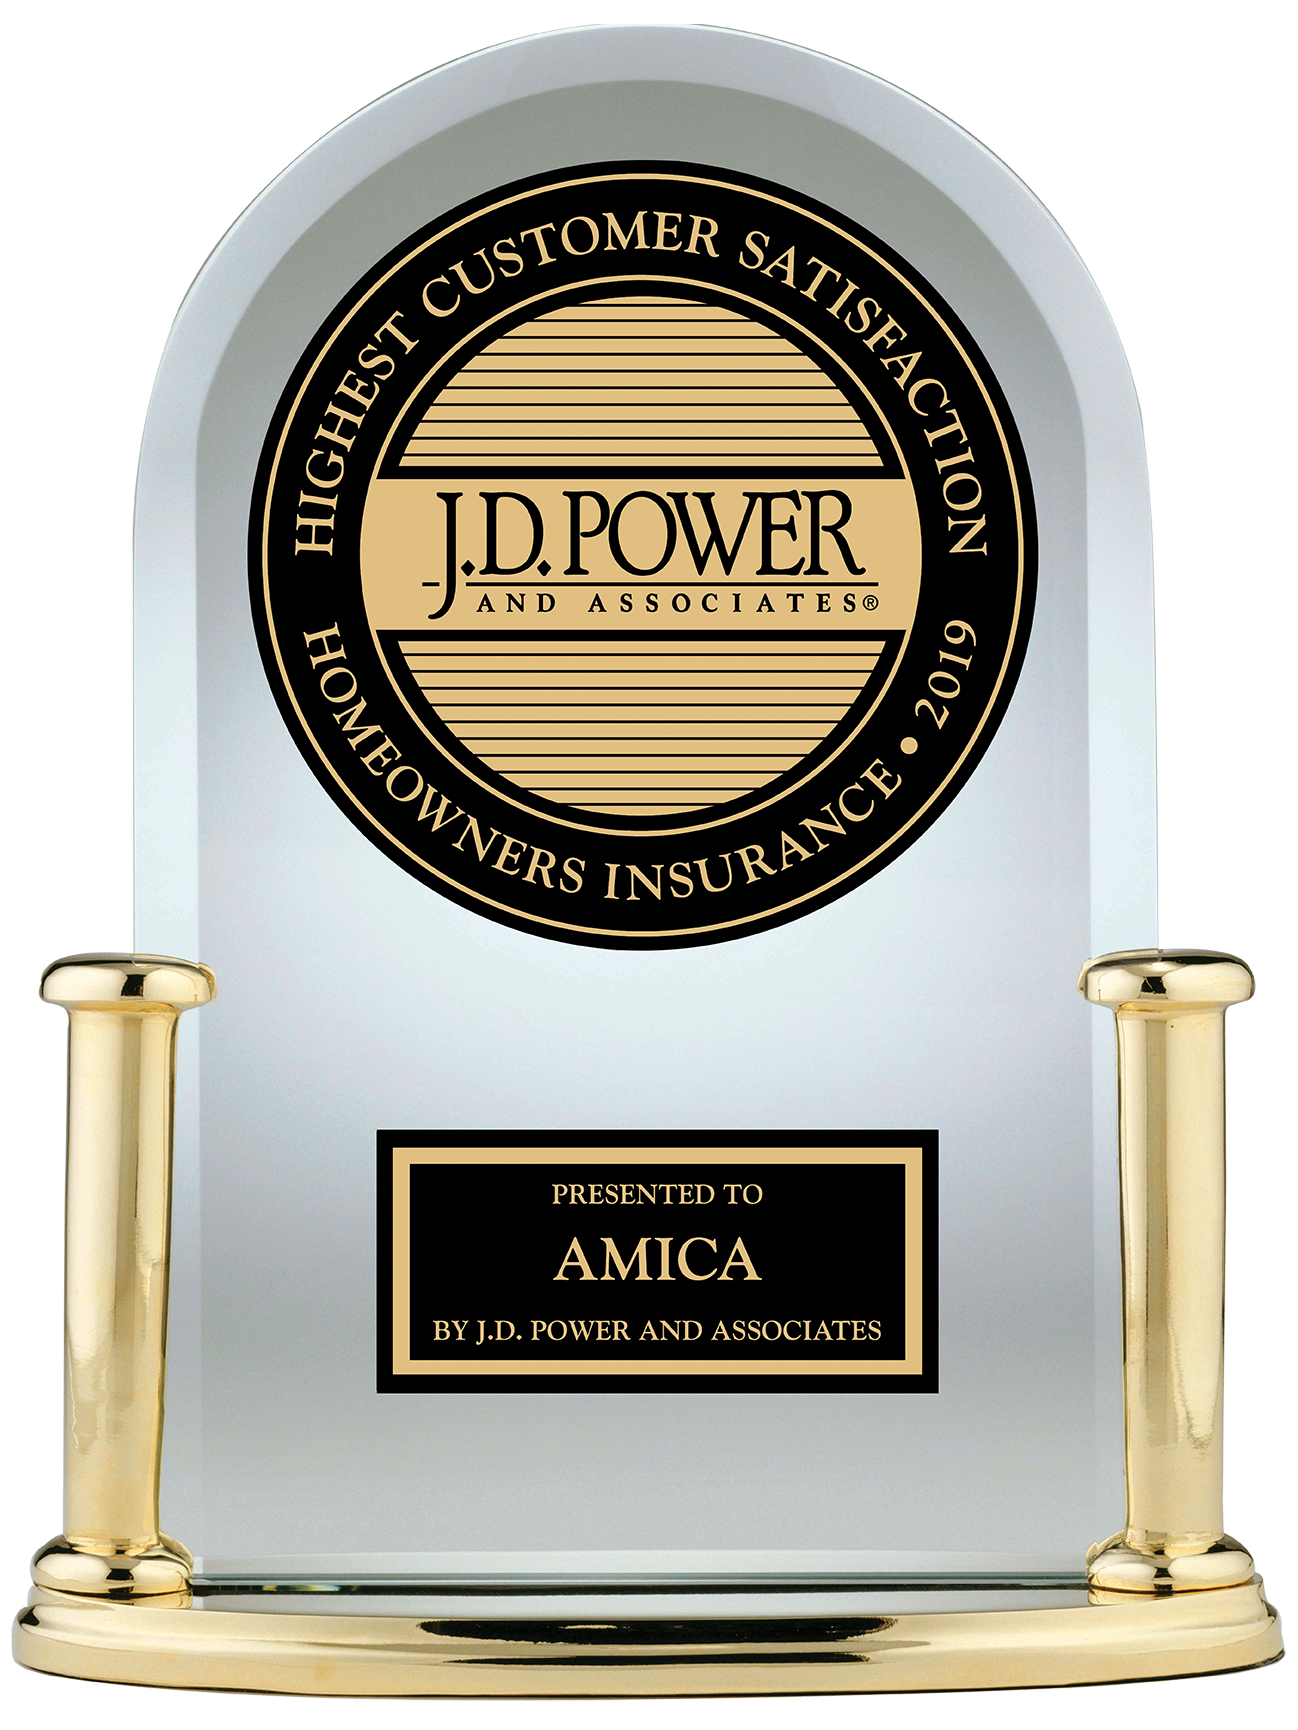 J.D. Power Highest Customer Satisfaction Homeowners Insurance 2019 presented to Amica by J.D. Power and Associates